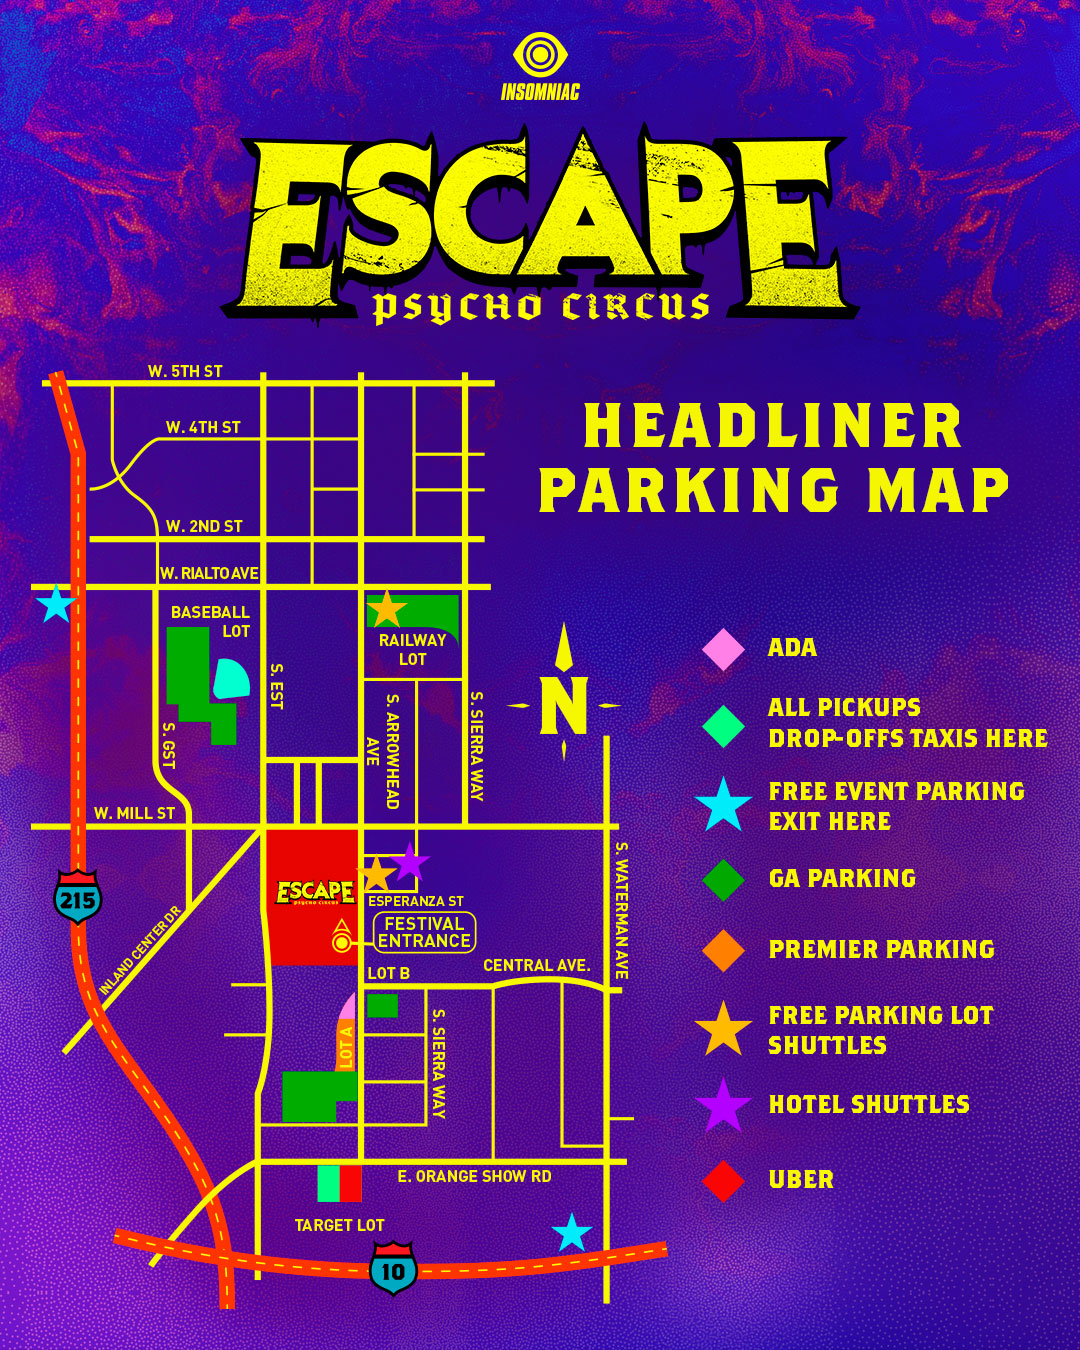 Escape parking map